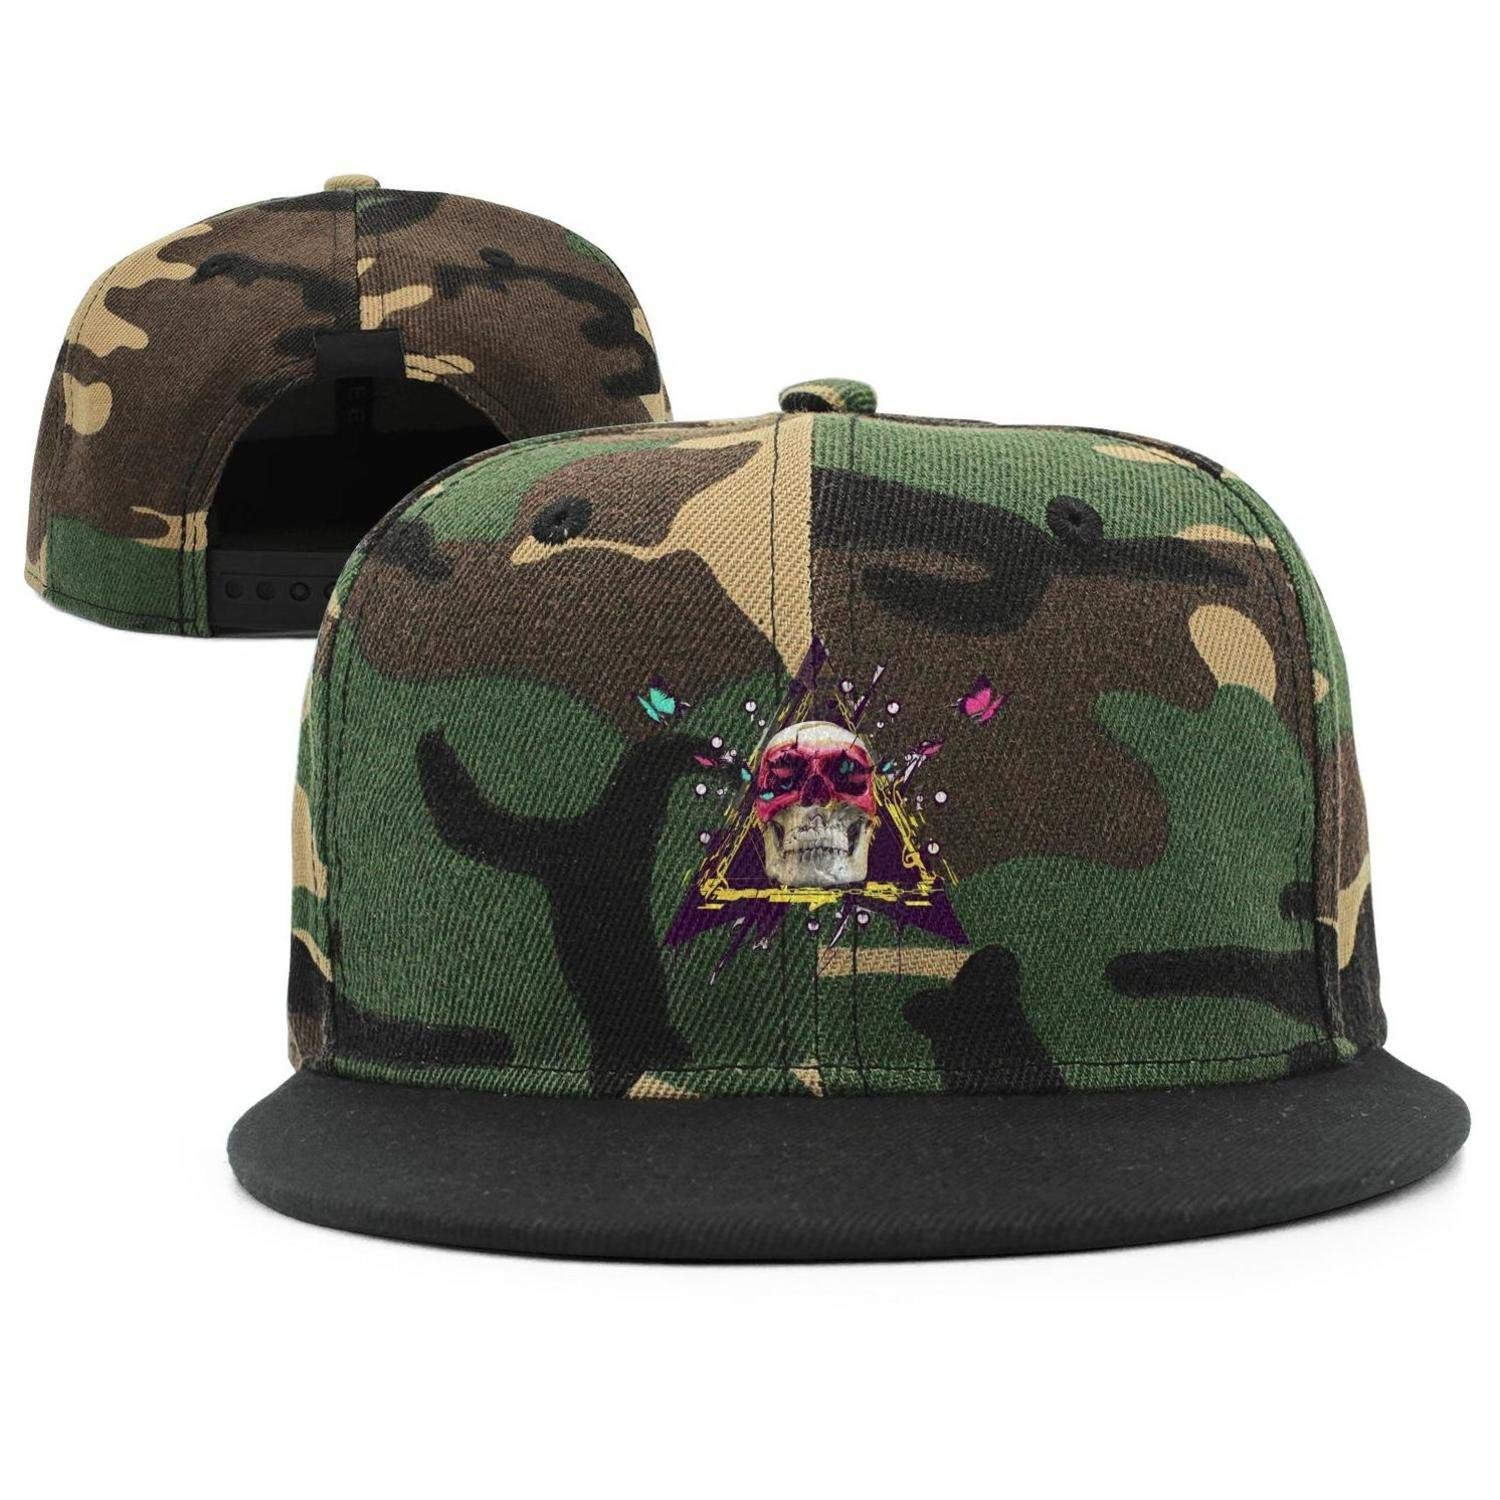 70d039749 Cheap Camo Hats With American Flag, find Camo Hats With American ...